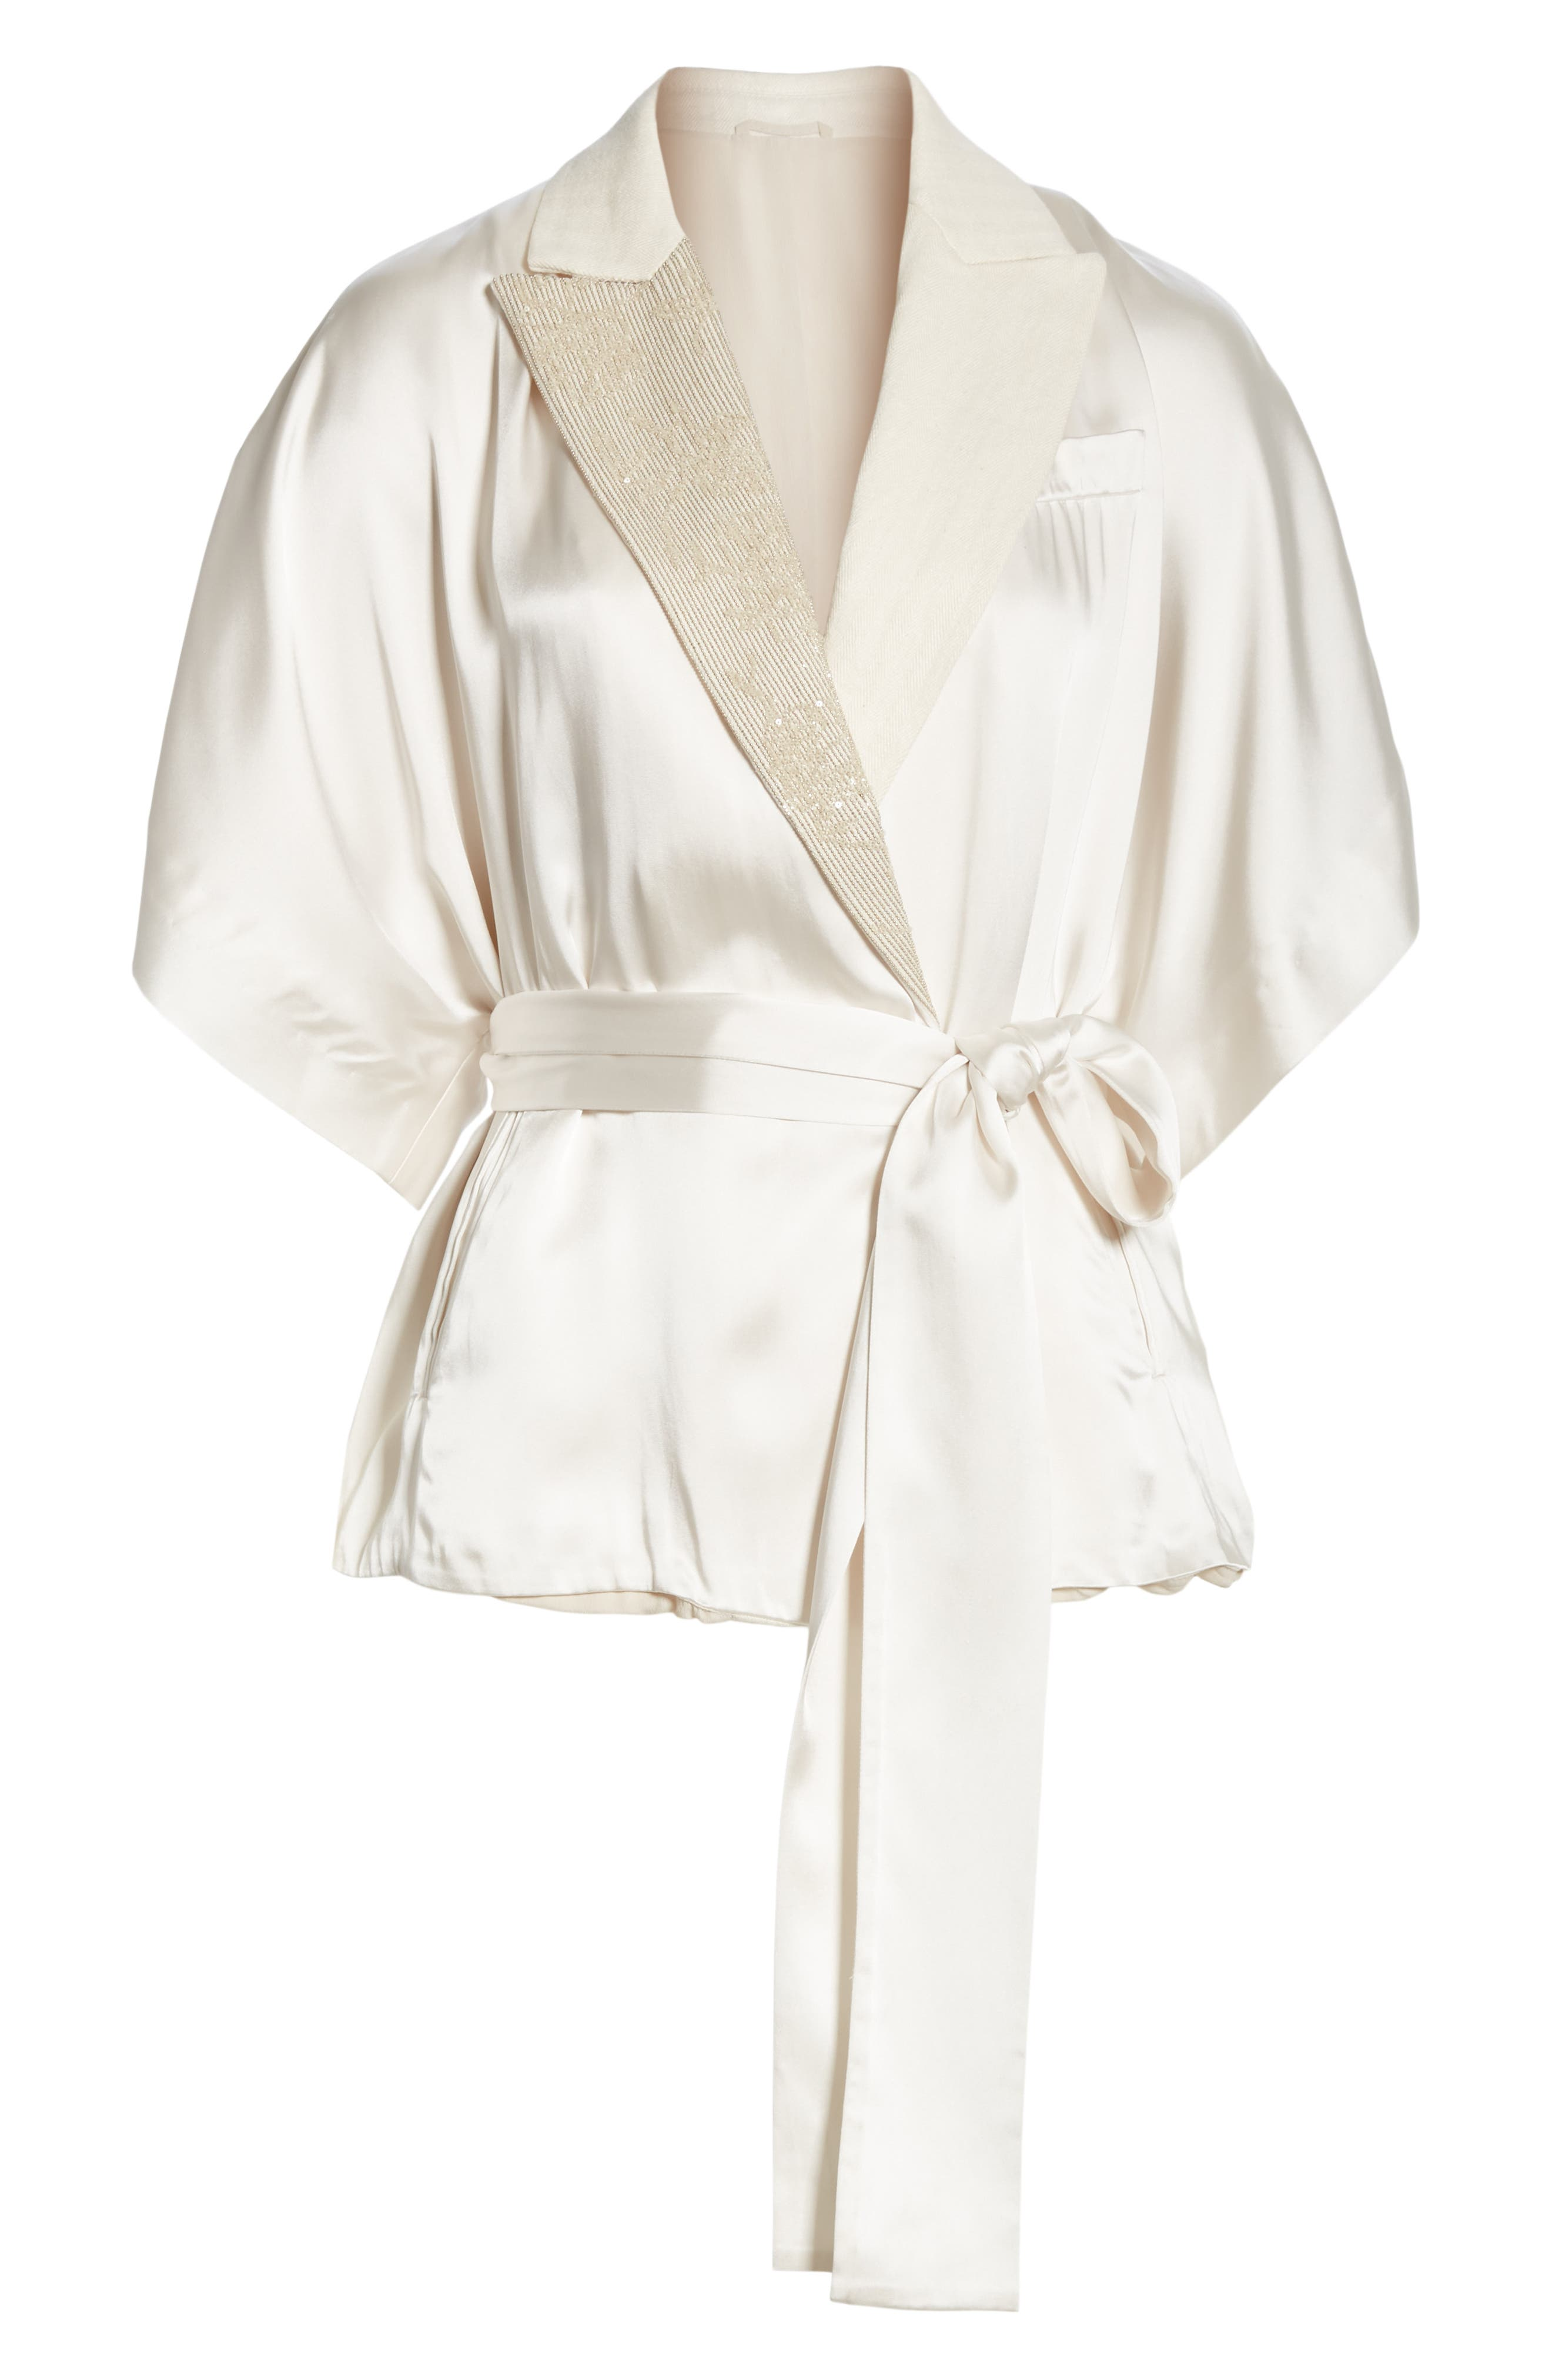 BRUNELLO CUCINELLI,                             Embellished Lapel Satin Kimono Jacket,                             Alternate thumbnail 5, color,                             BONE